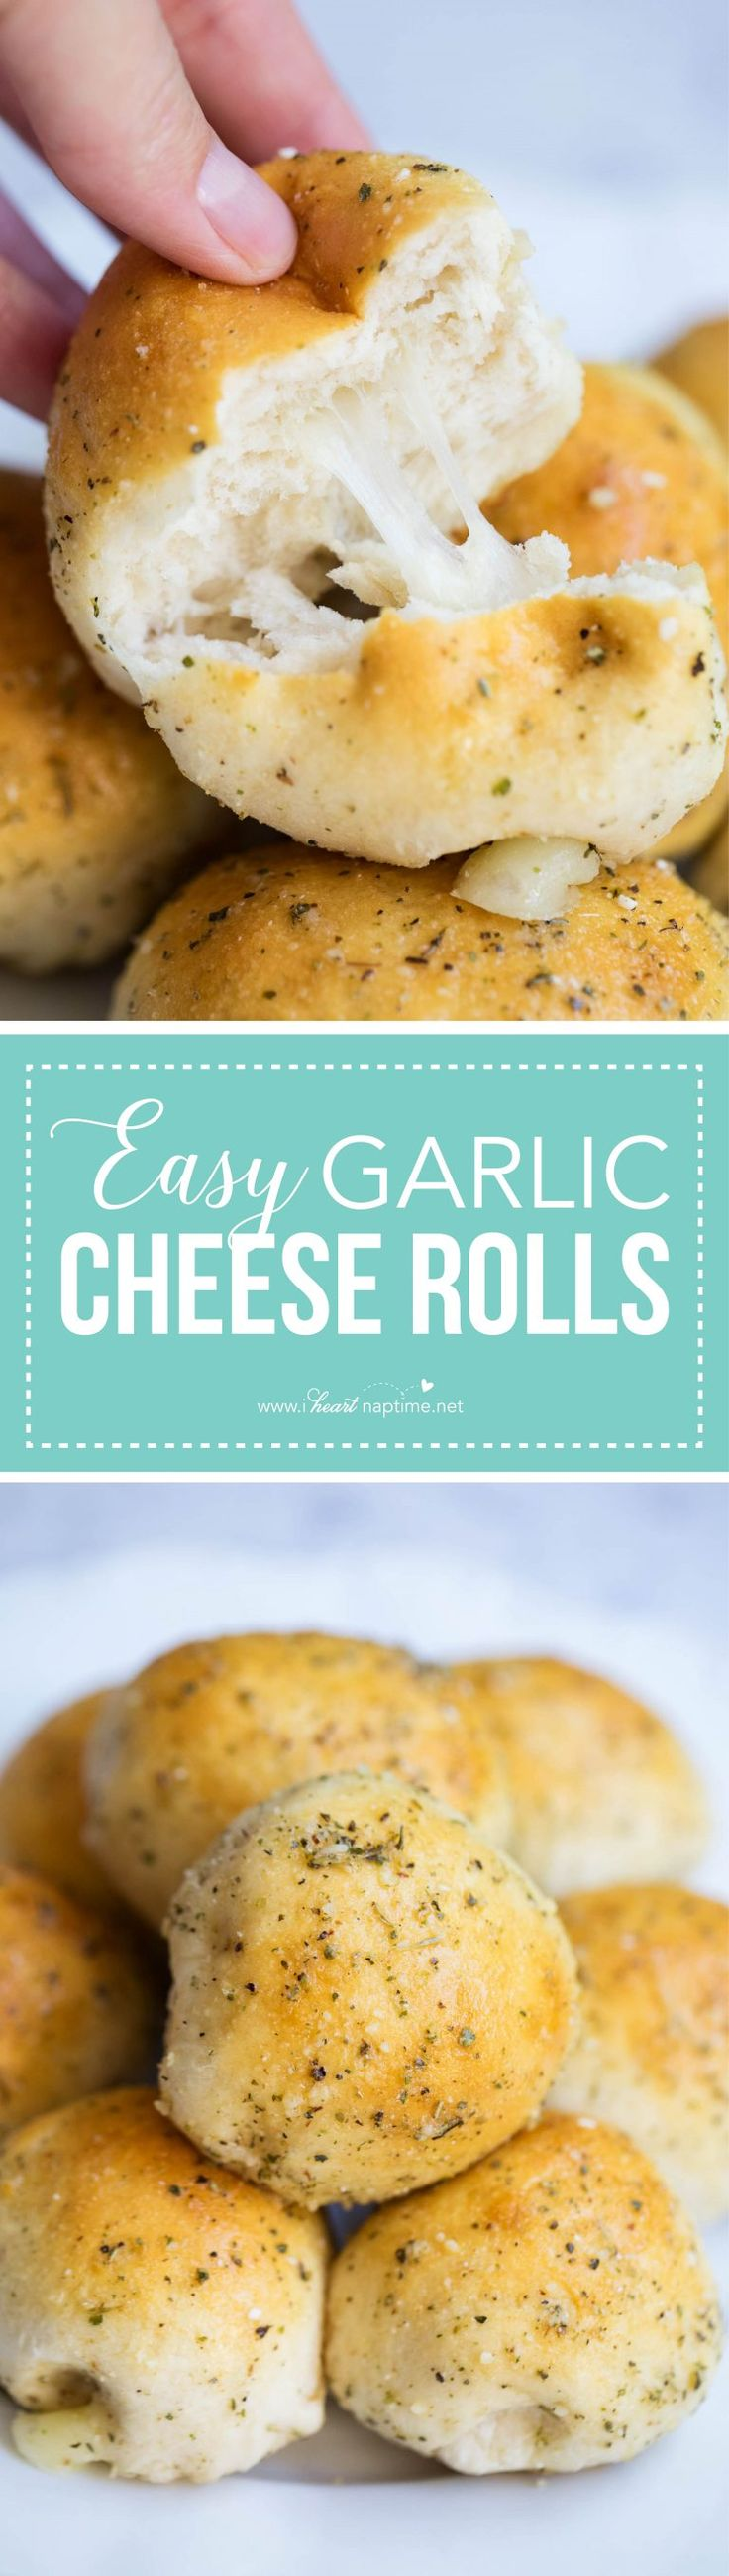 EASY garlic cheese rolls filled with mozzarella cheese and brushed with melted butter and a garlic seasoning. Such a quick and easy dinner roll recipe that can be made in 20 minutes.